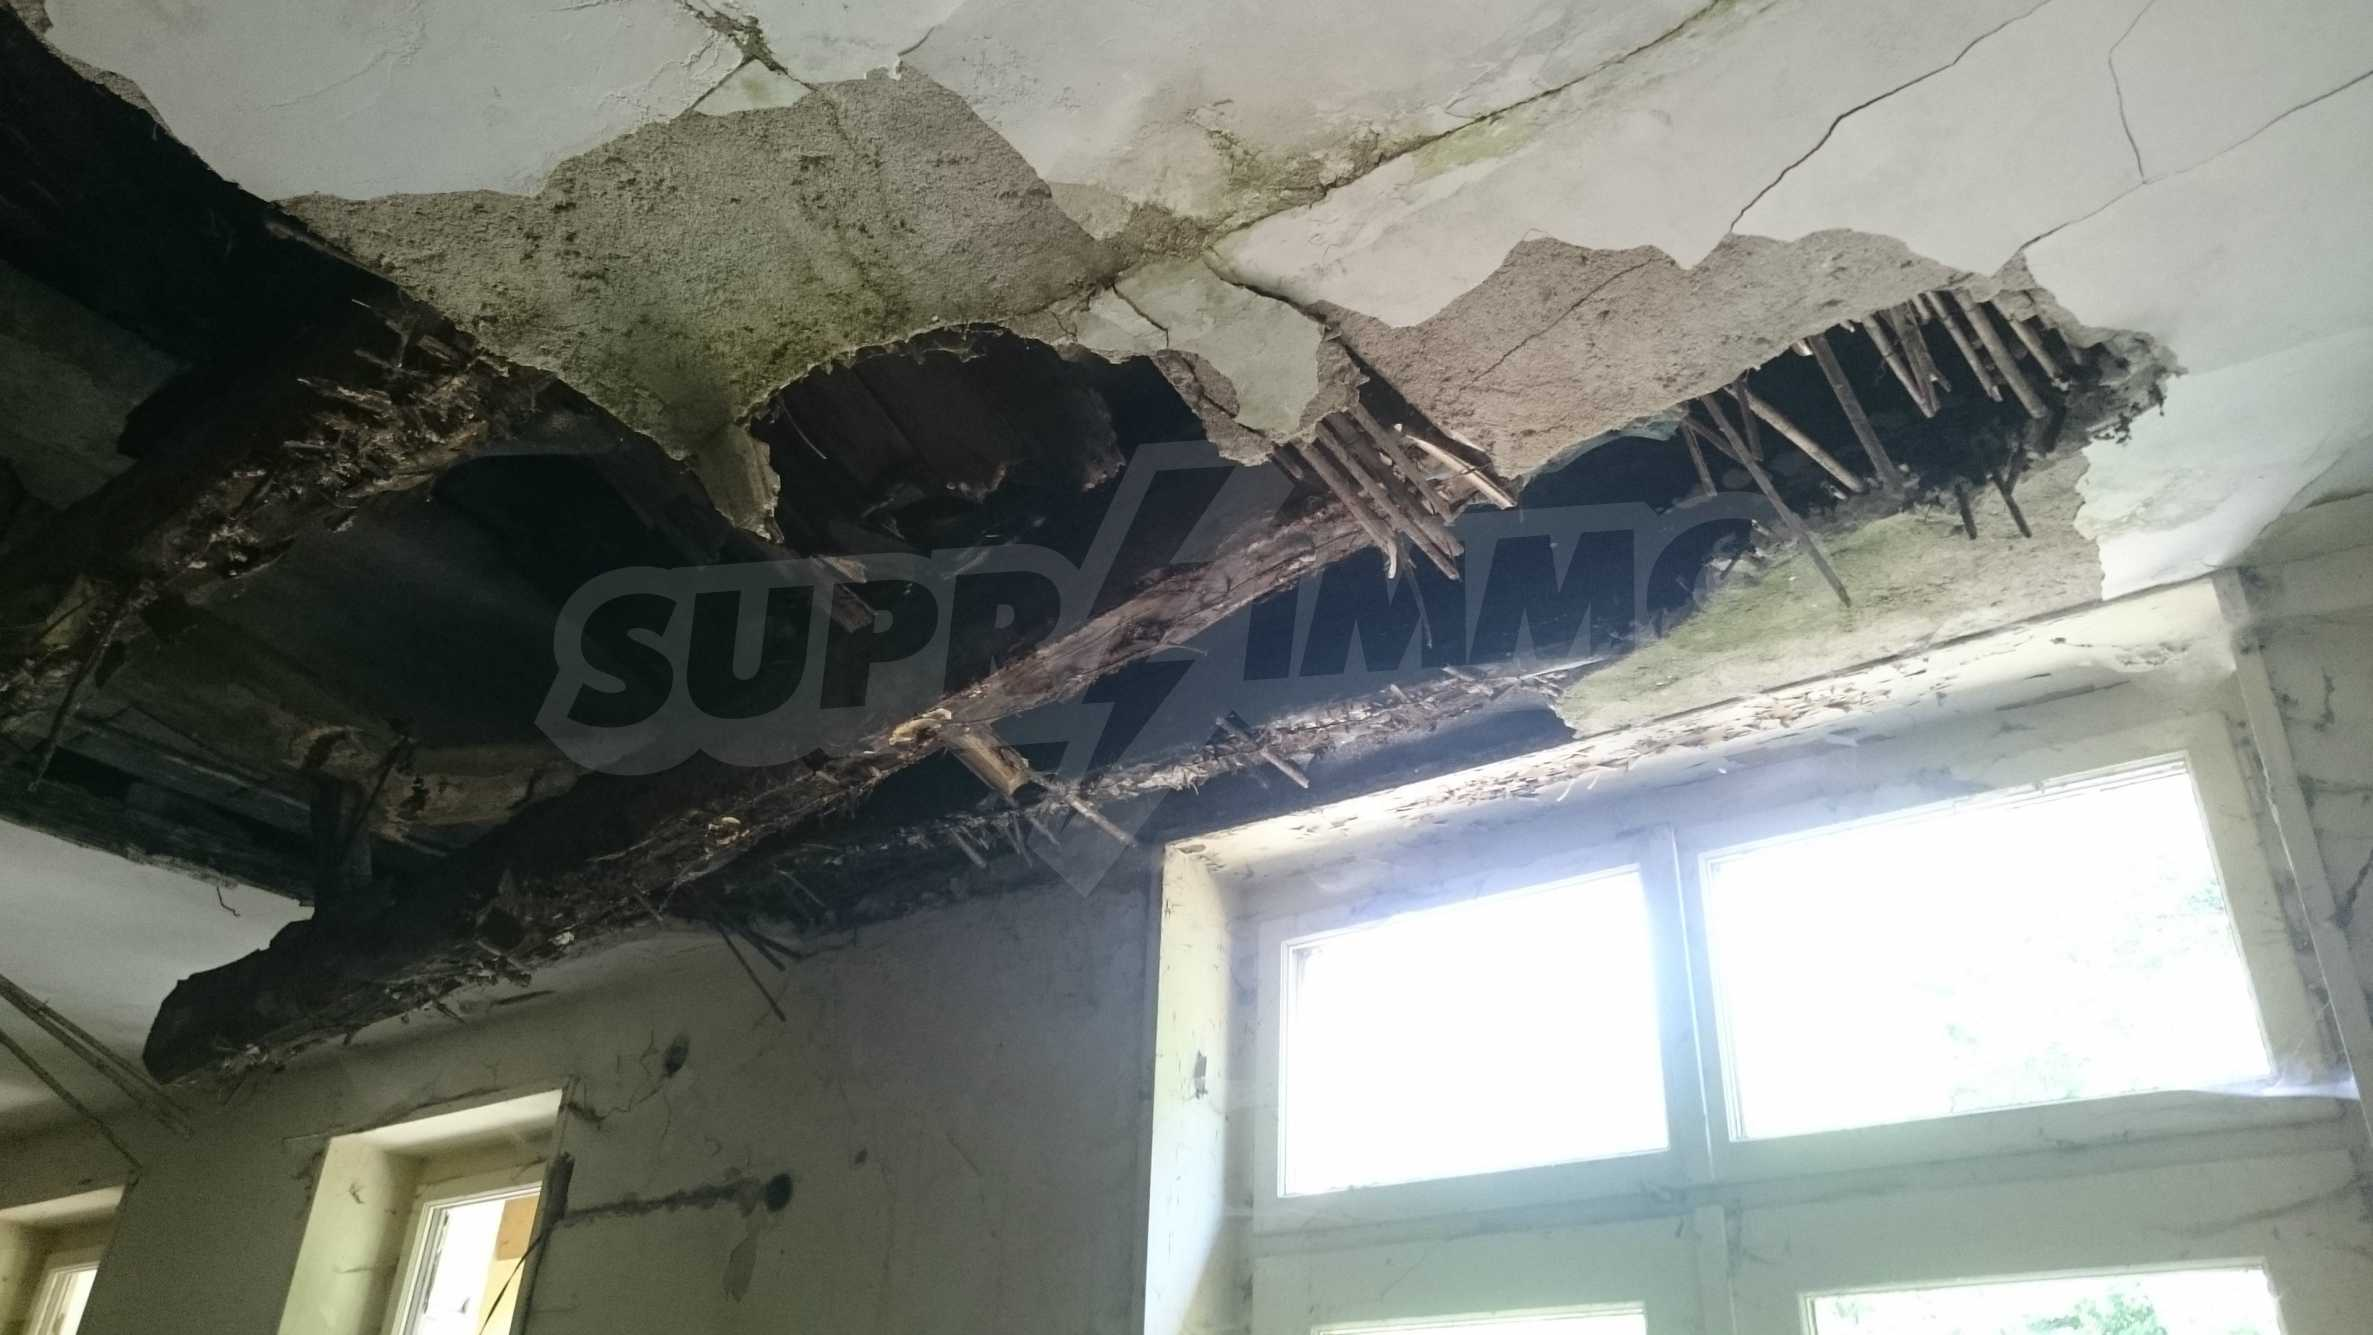 Hotel in need of complete renovation 20